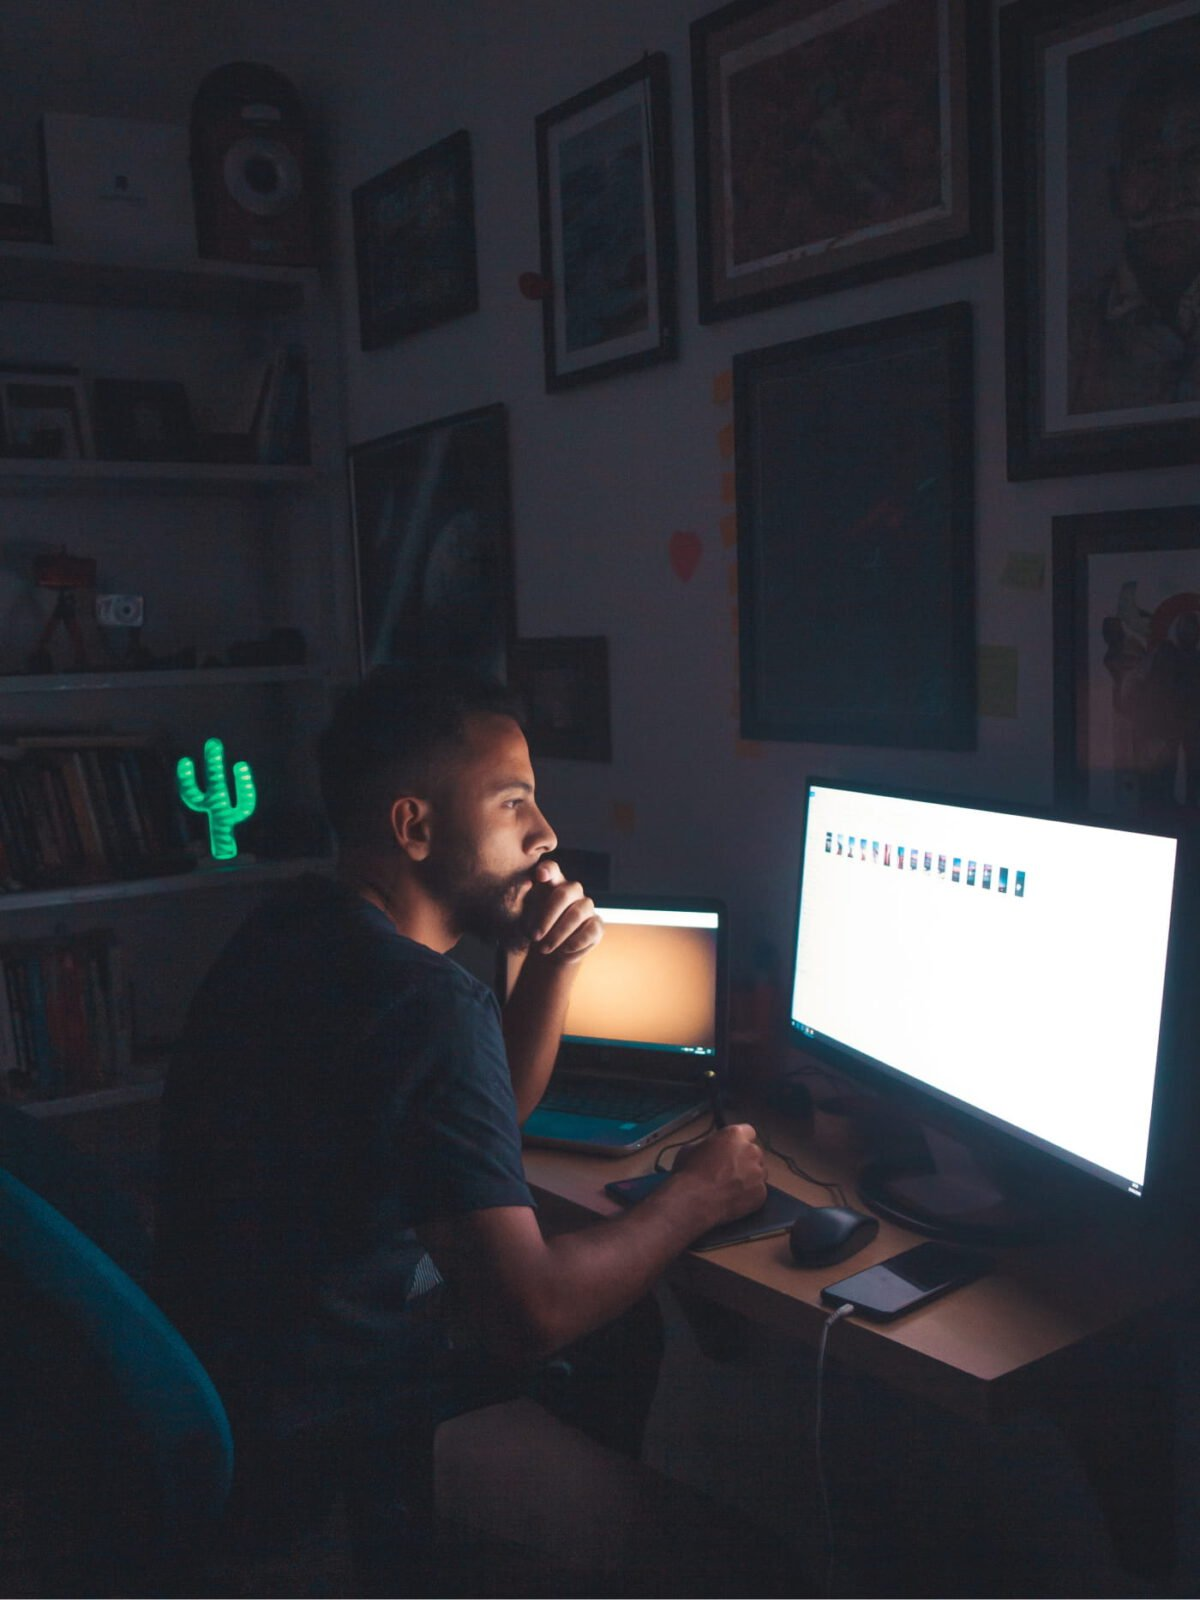 A person sitting in the dark in front of a screen looking at images.